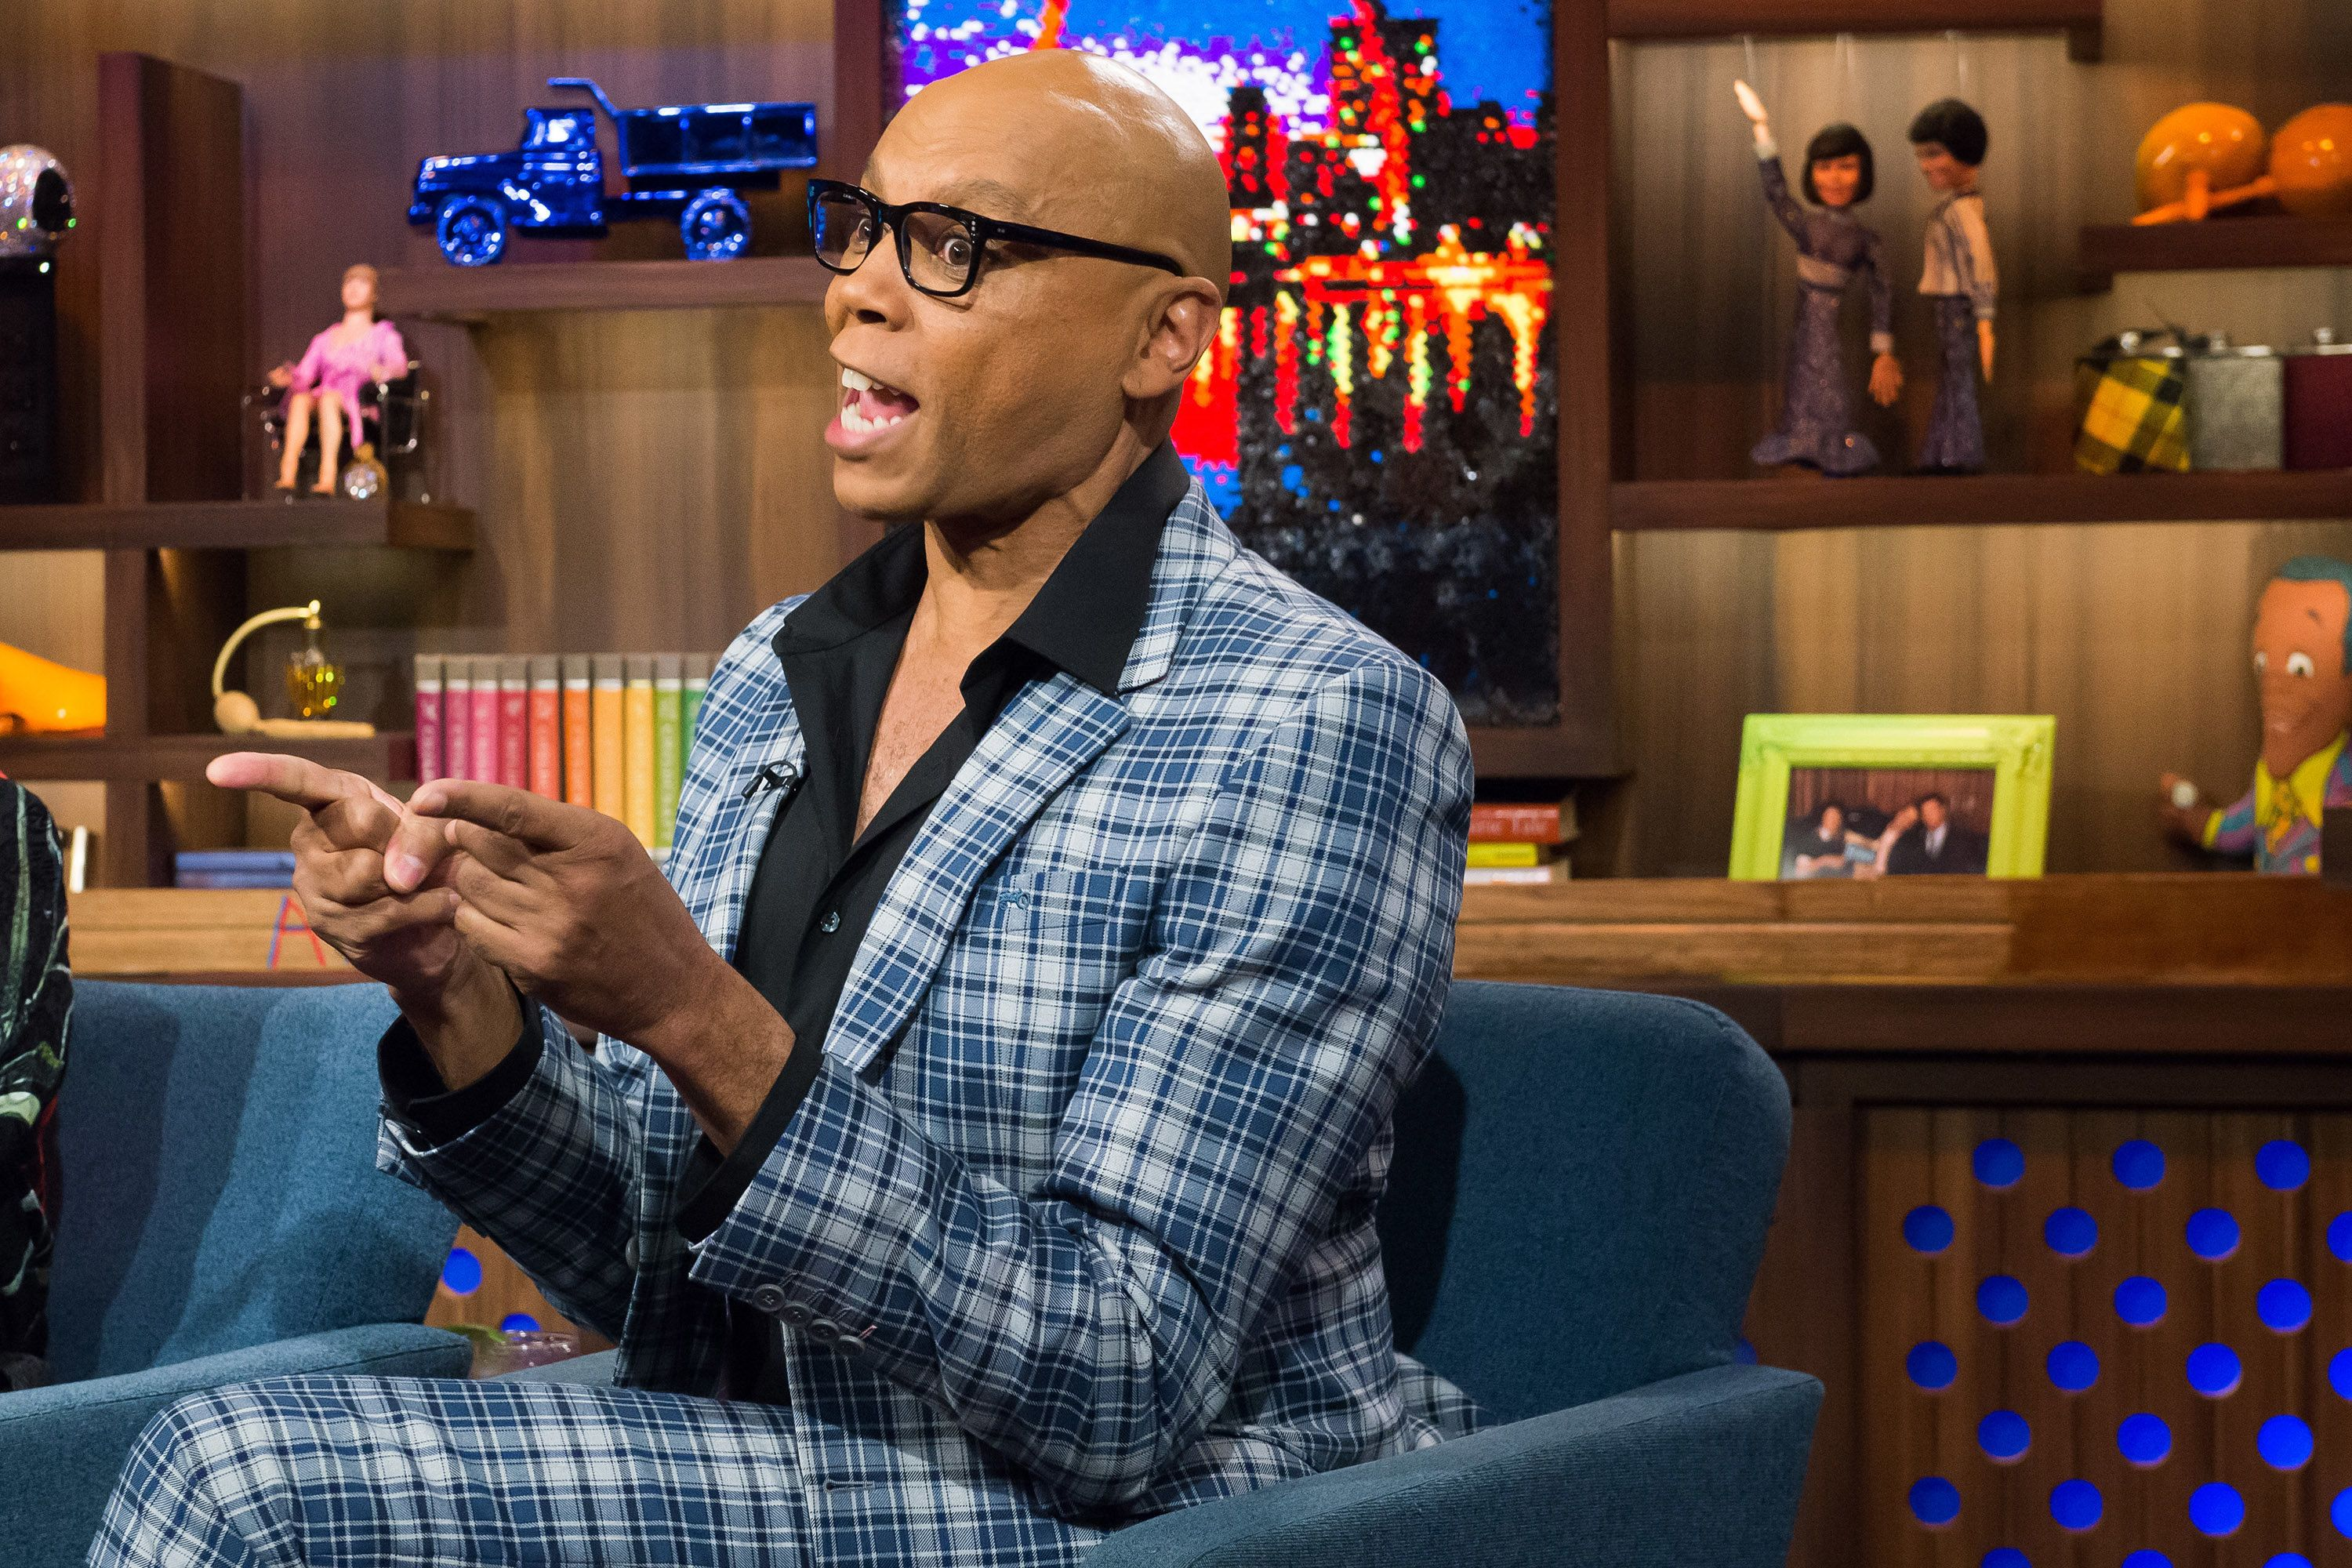 WATCH WHAT HAPPENS LIVE -- Pictured: RuPaul -- (Photo by: Charles Sykes/Bravo/NBCU Photo Bank via Getty Images)